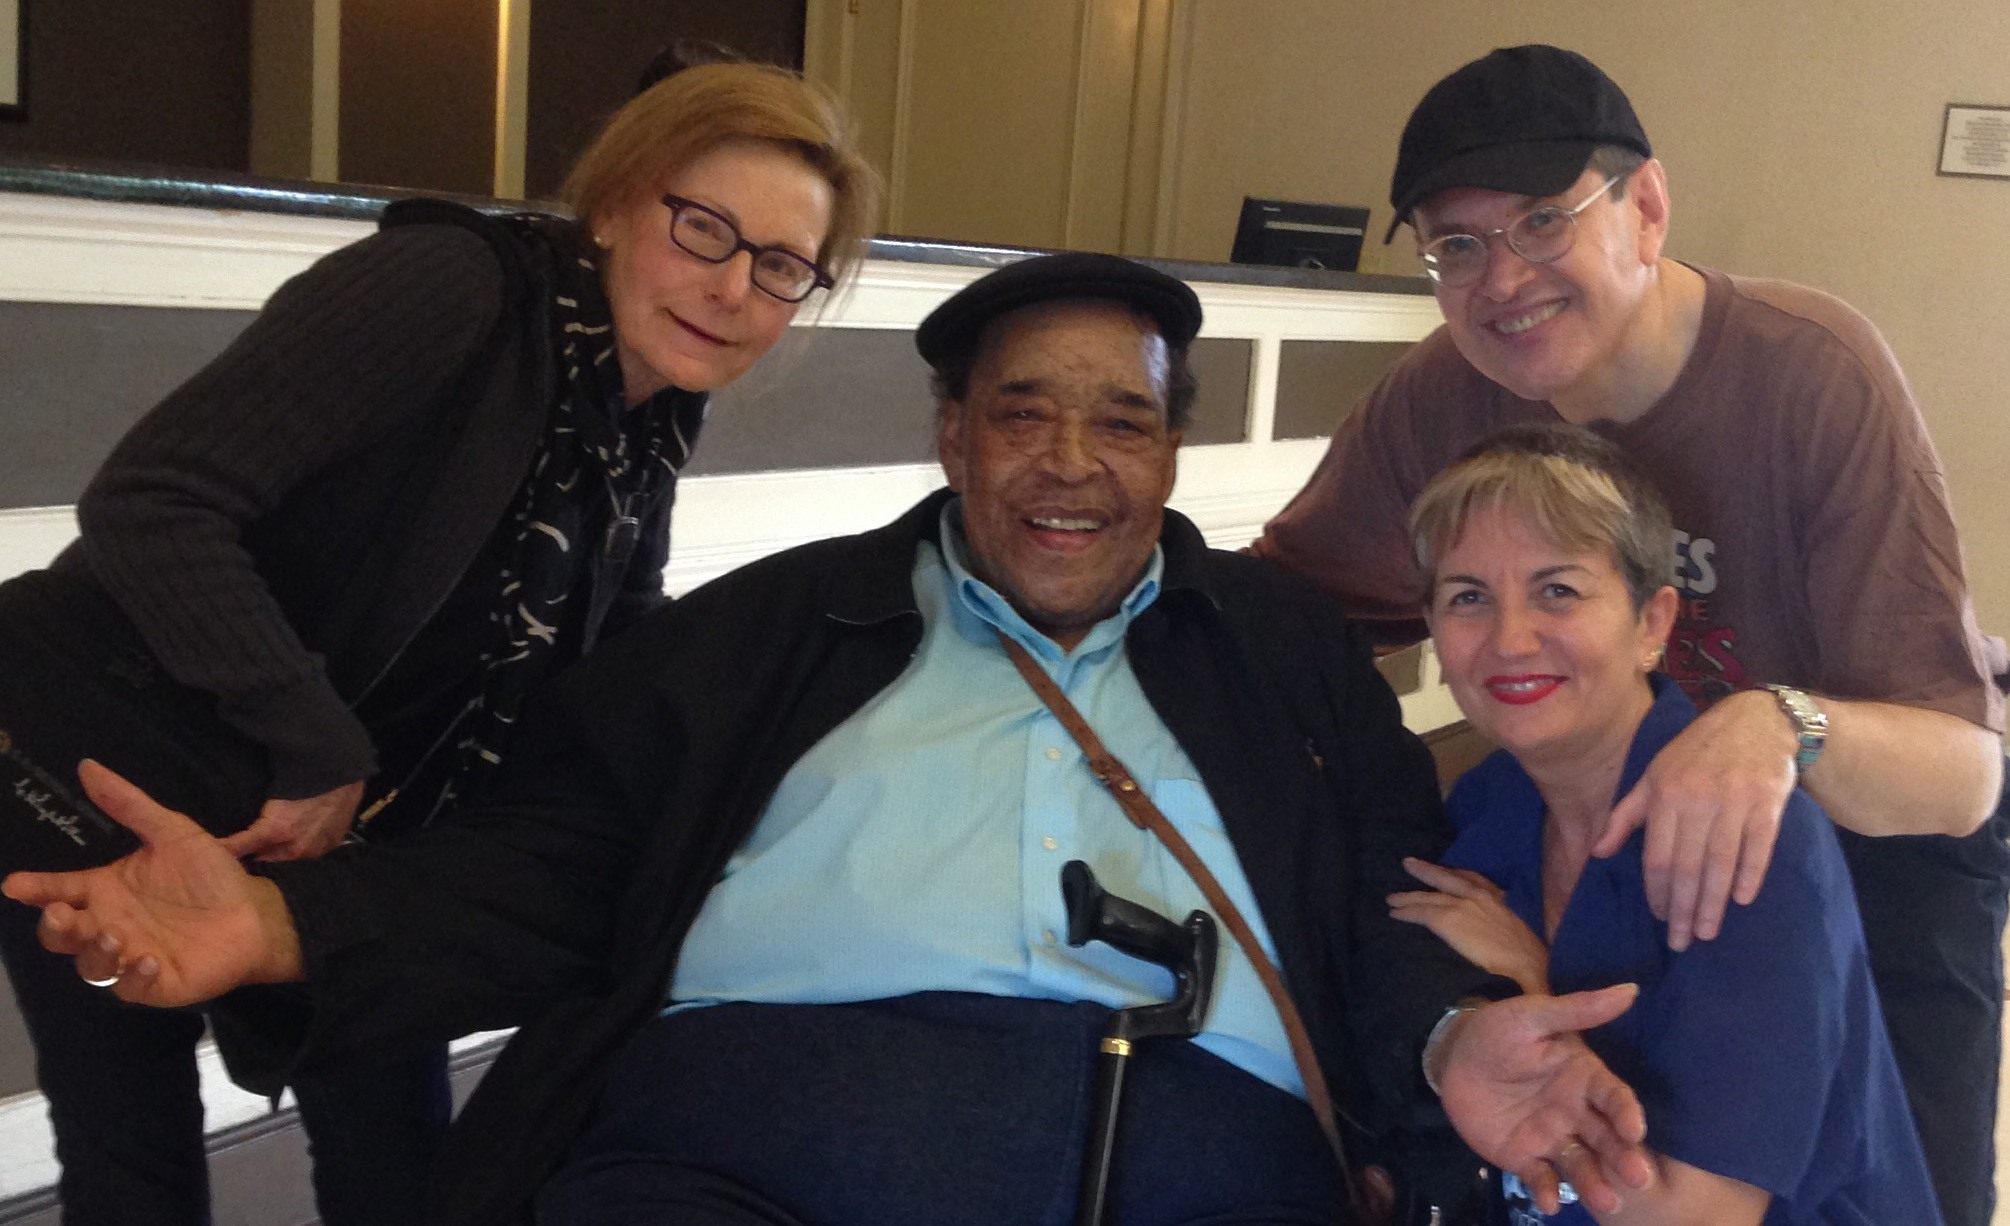 JACKLYN, JAMES COTTON, ANGELINA AND FABRIZIO POGGI